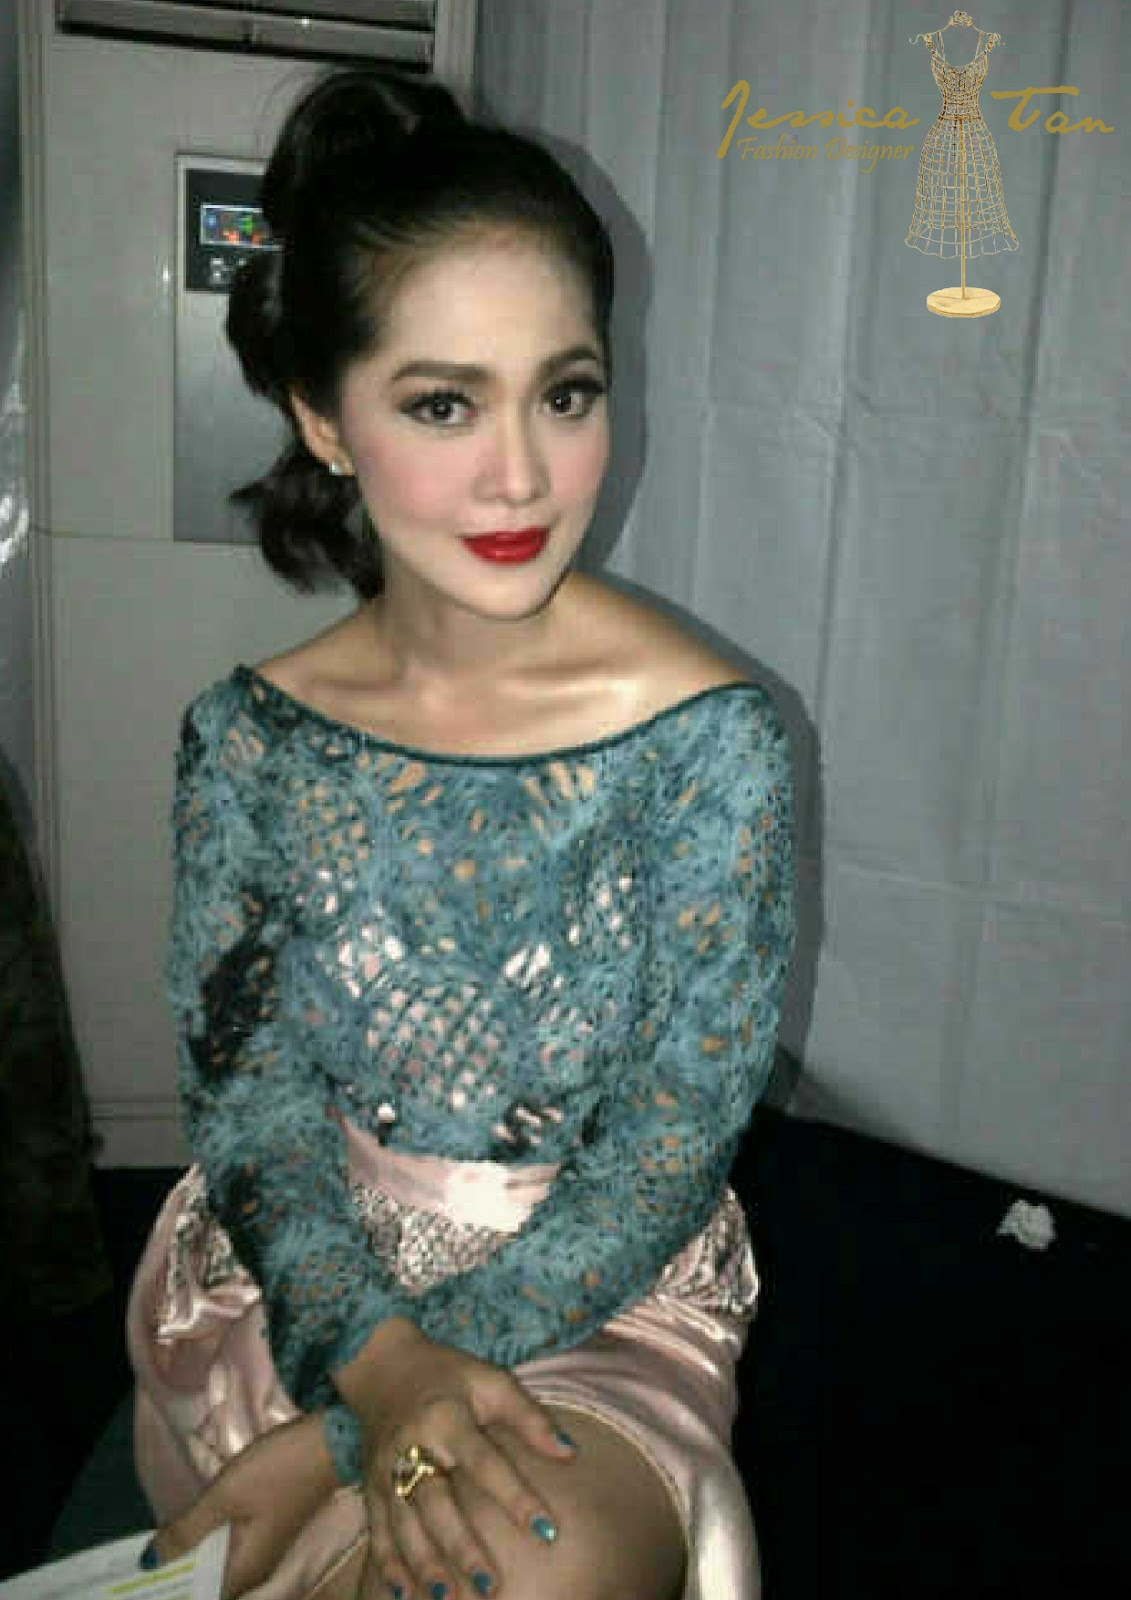 Labels: wardrobe for METRO TV ( FOR.BIS )  ANTV ( KLIK AWARDS